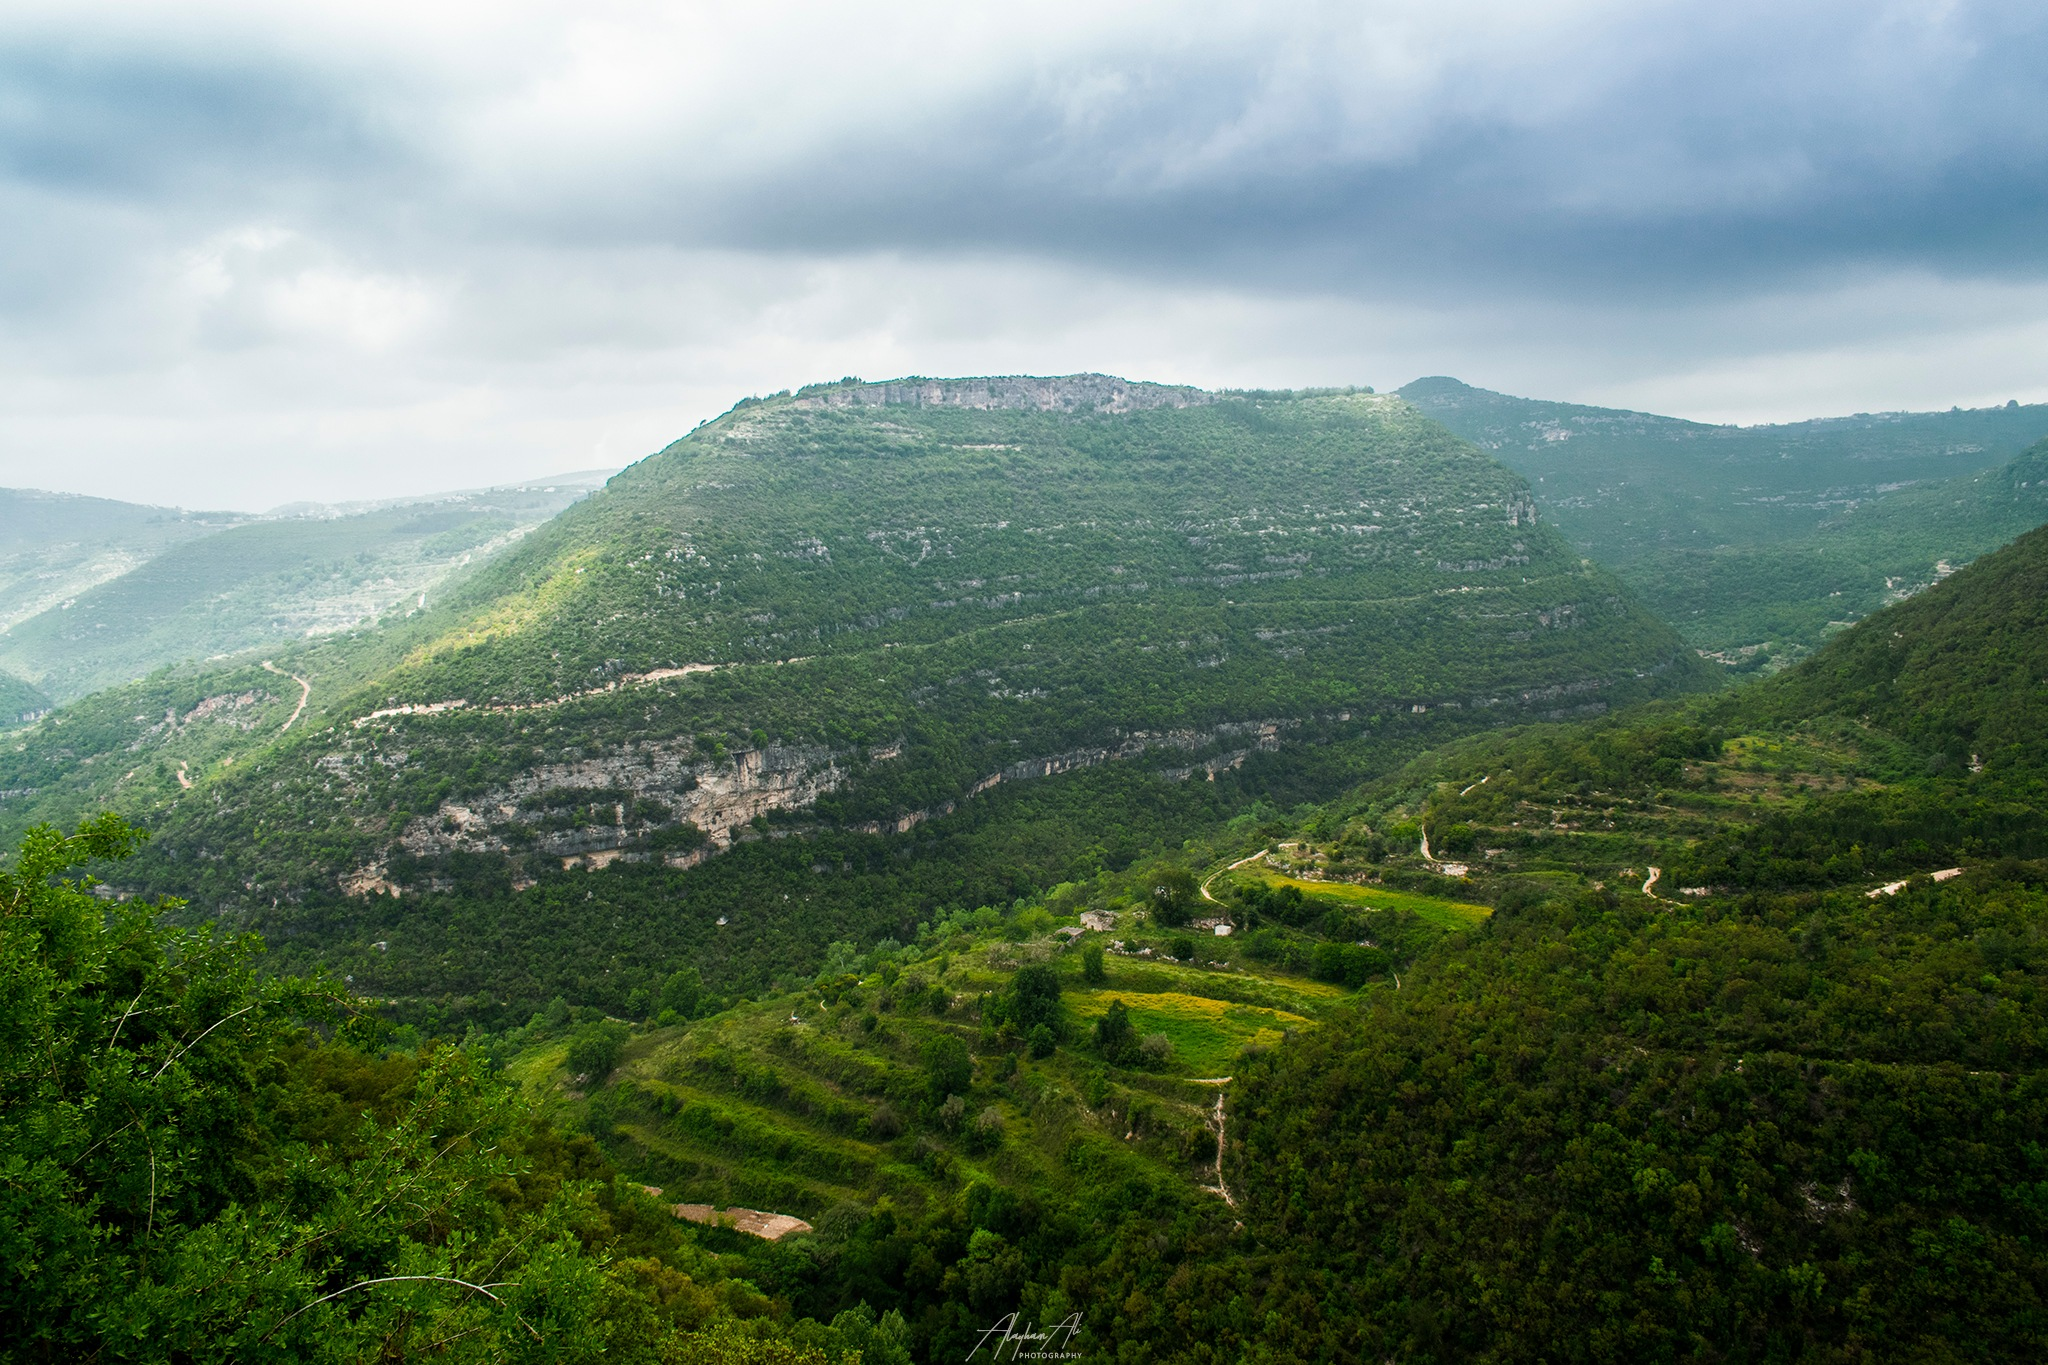 Syrian mountains by Alayham Ali